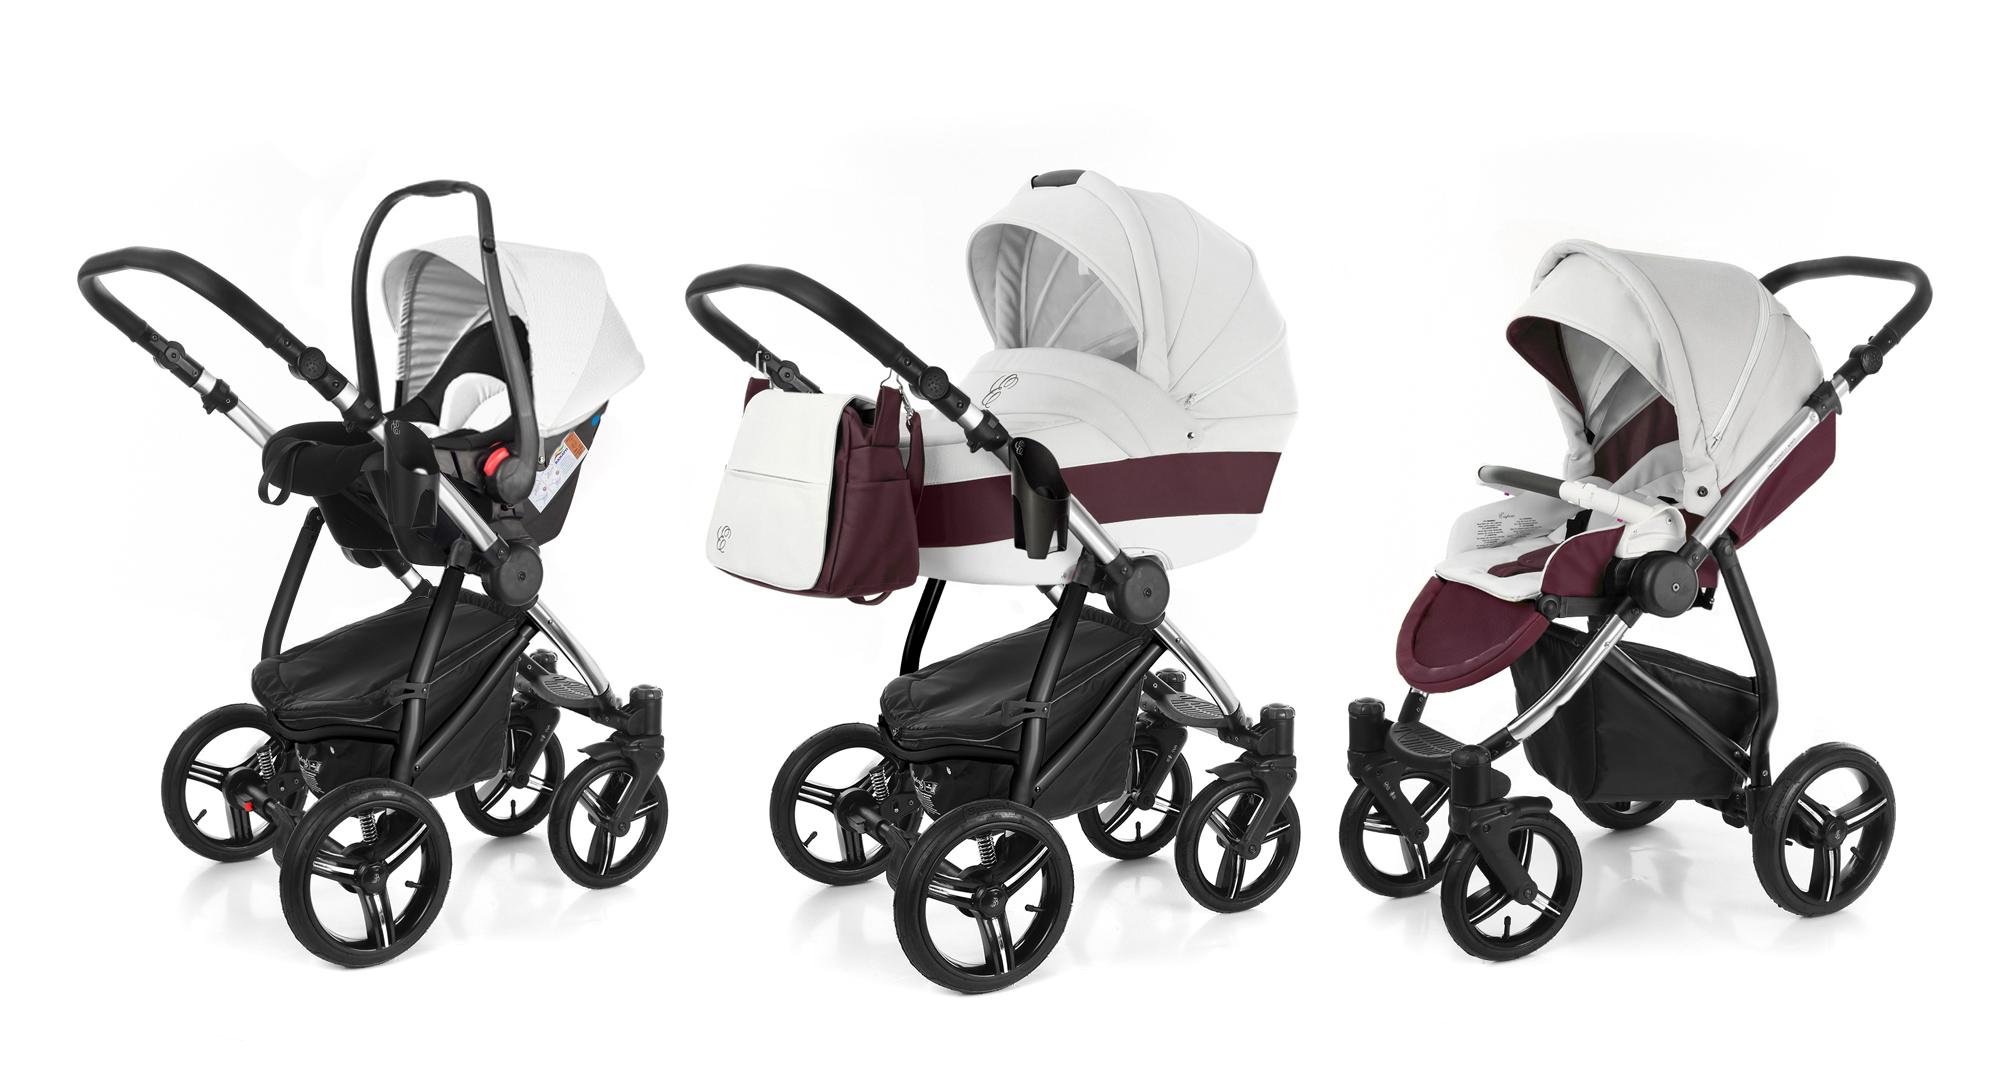 Коляска 3 в 1 Esspero Grand Newborn Lux (шасси Chrome) Maroon leatherette